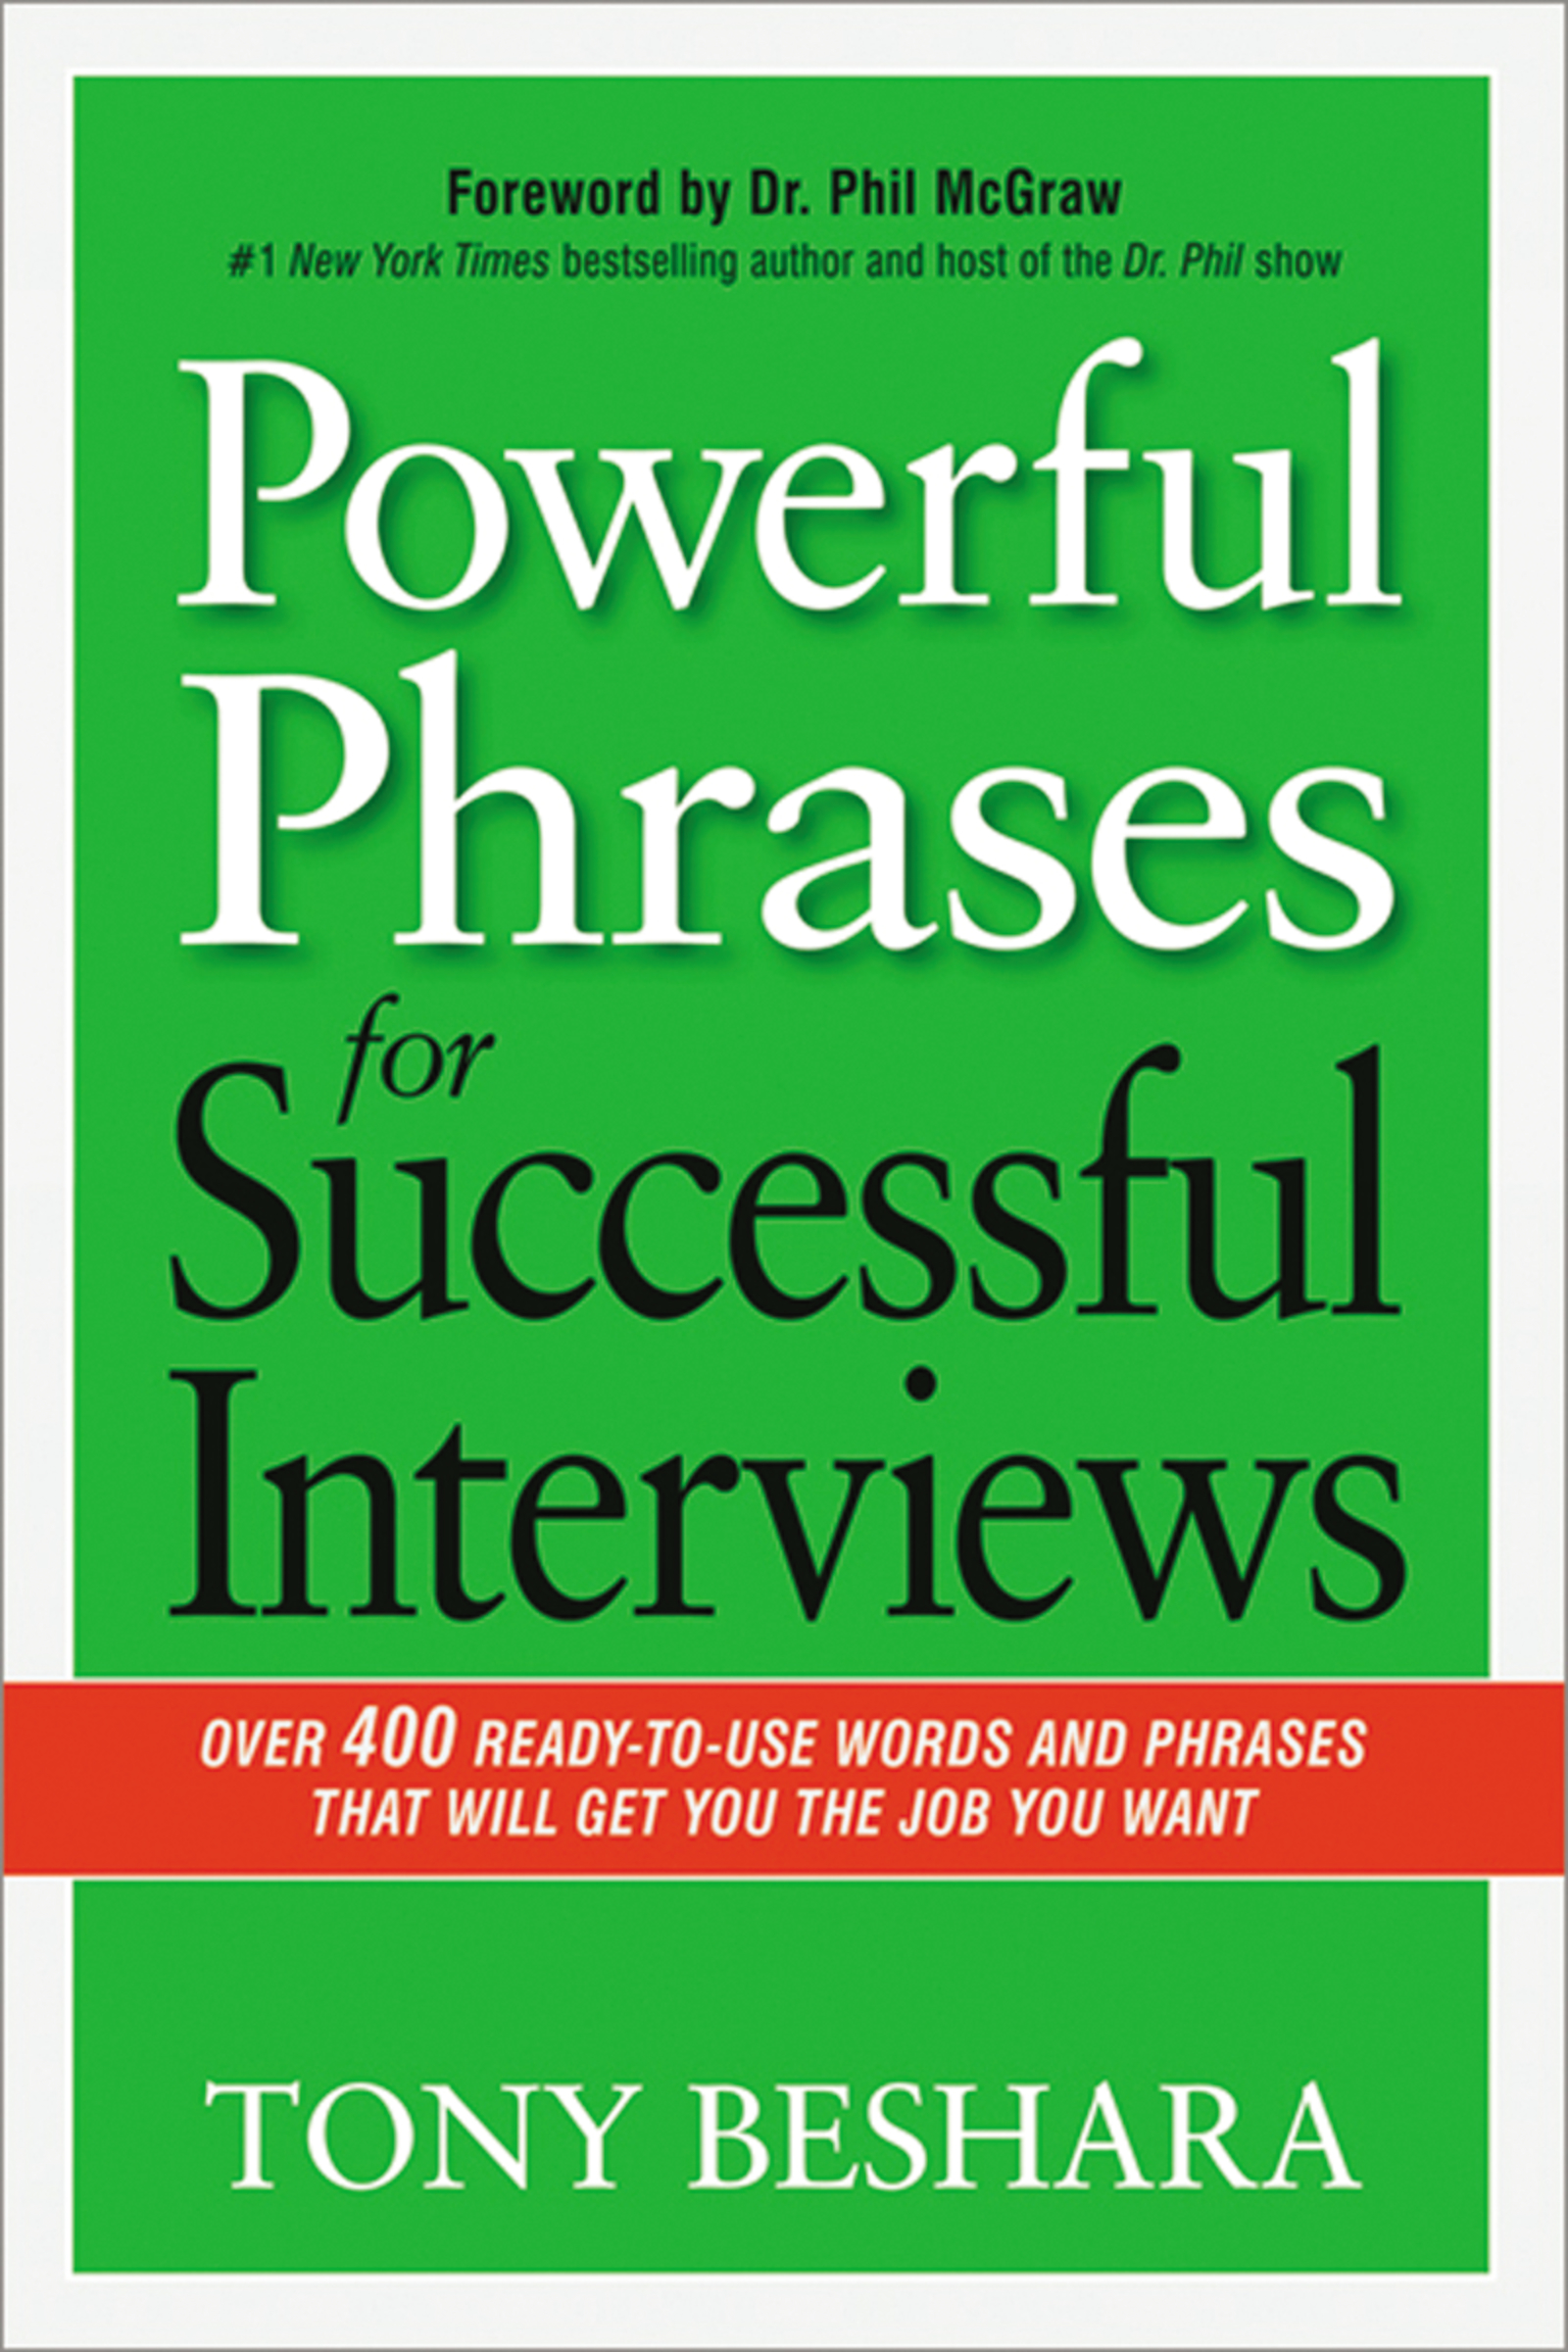 Powerful Phrases for Successful Interviews Over 400 Ready-to-Use Words and Phrases That Will Get You the Job You Want